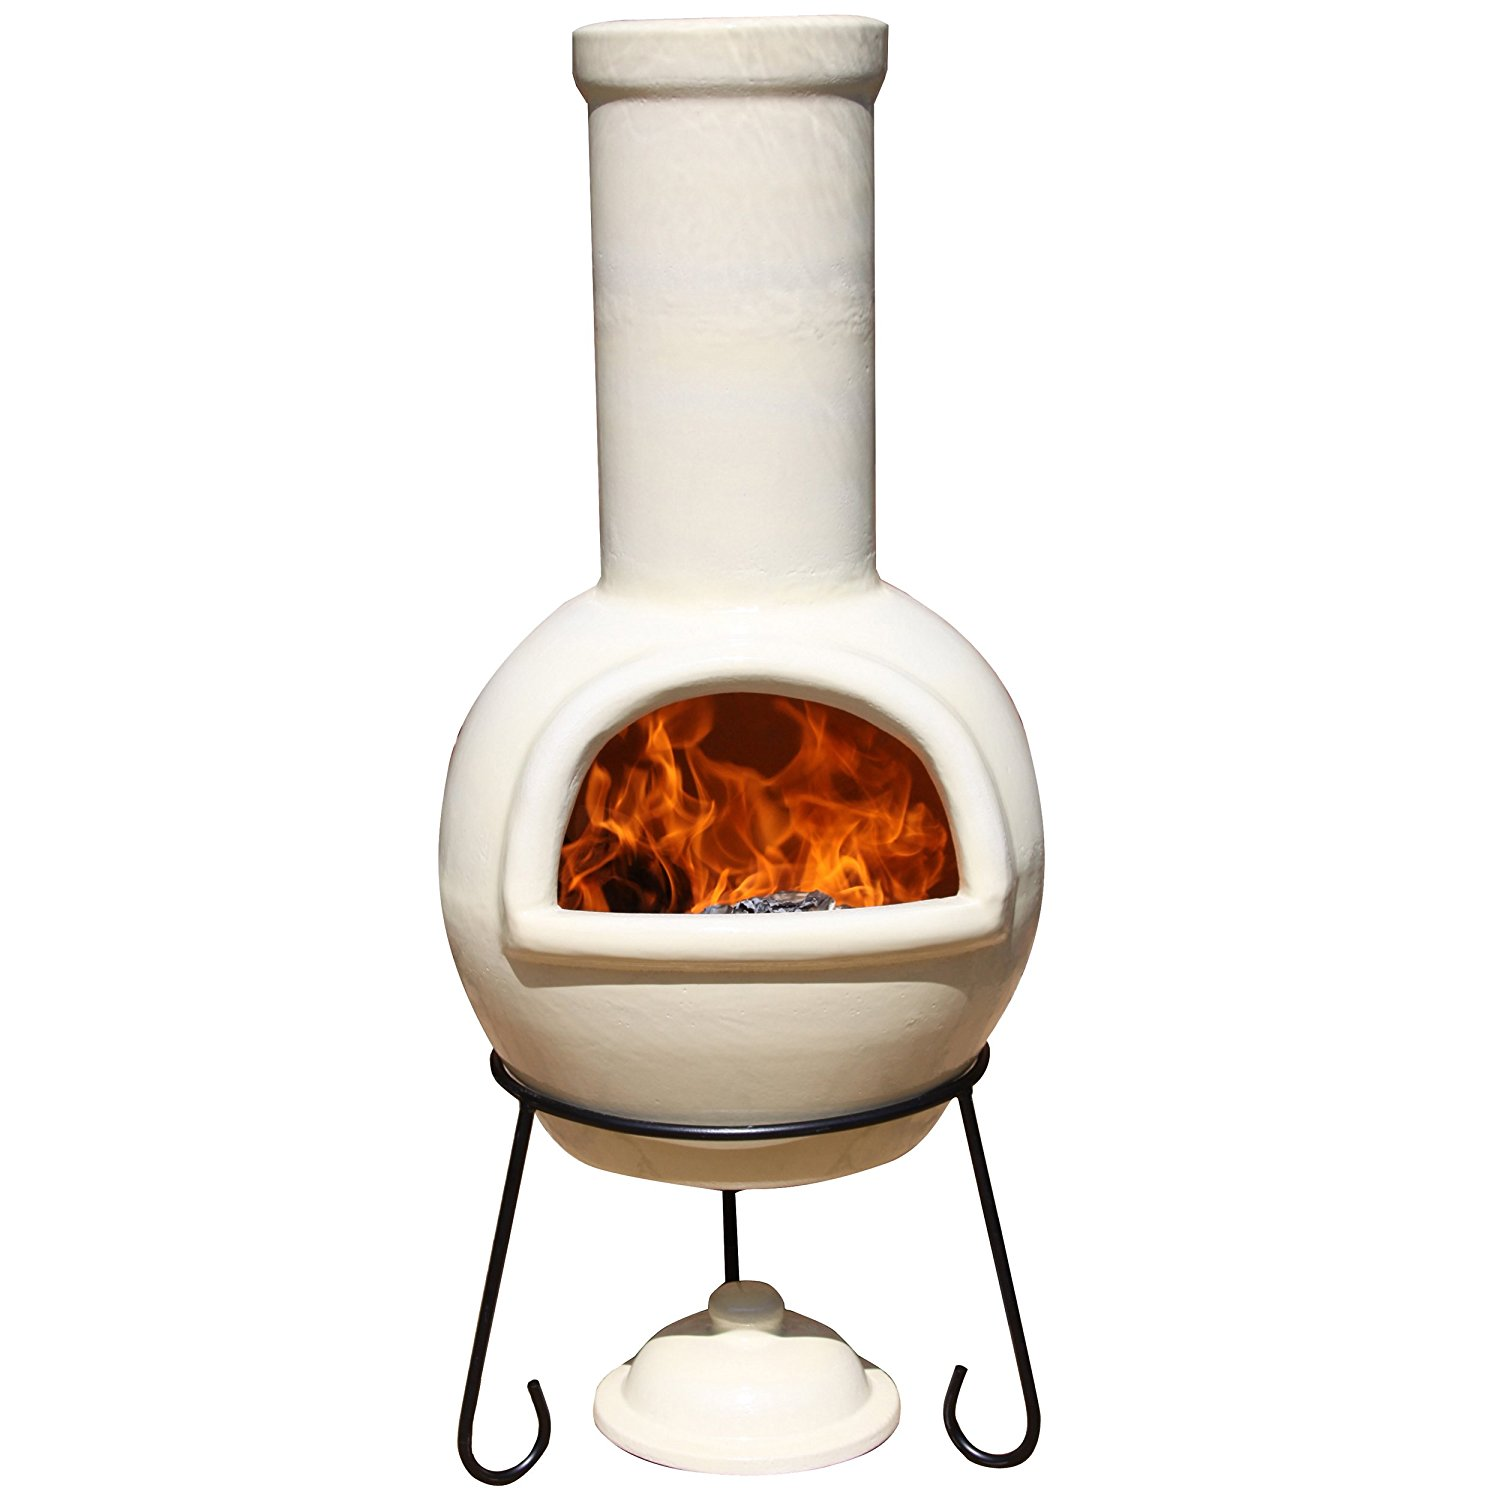 Gardeco AFC-C21.70 Ivory Chiminea - best Clay Chiminea